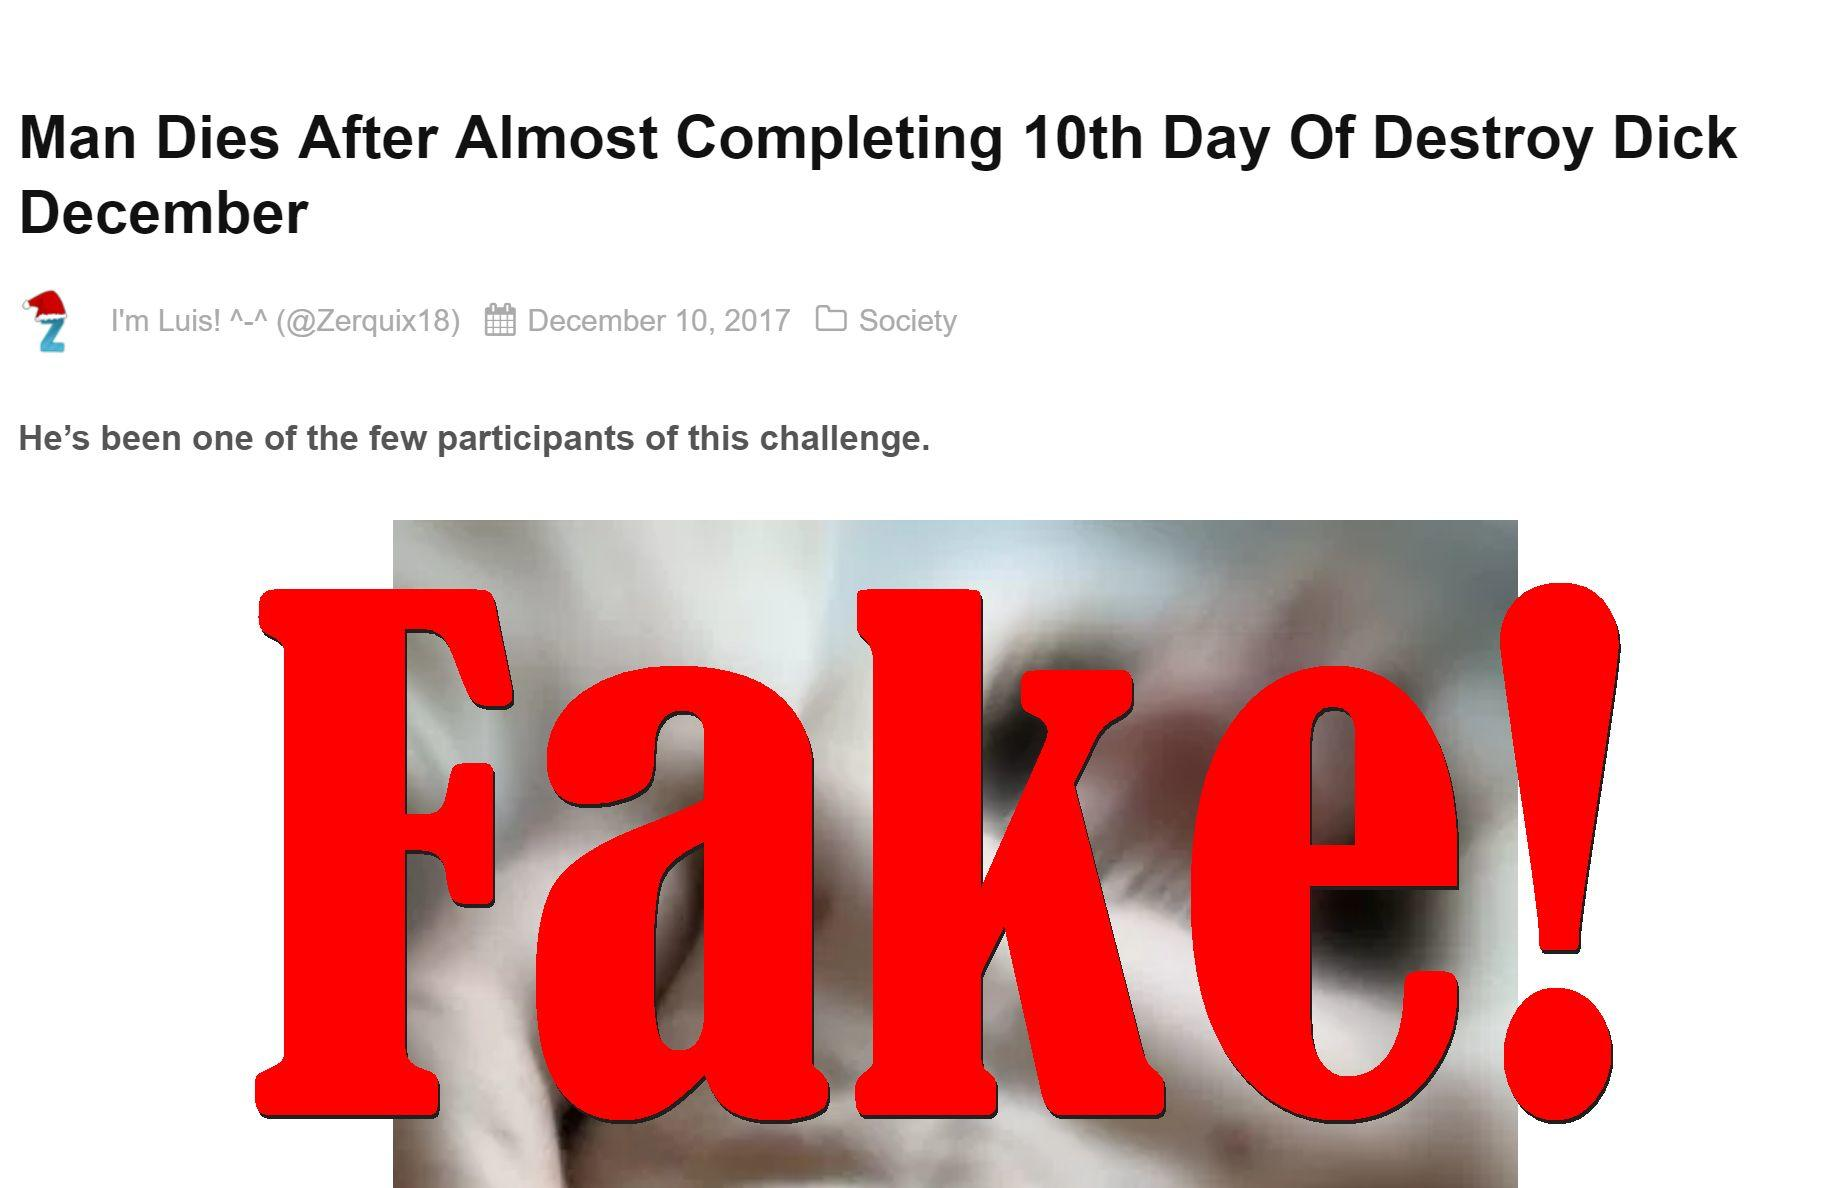 Fake News: Man Did NOT Die After Almost Completing 10th Day Of Destroy D*ck December